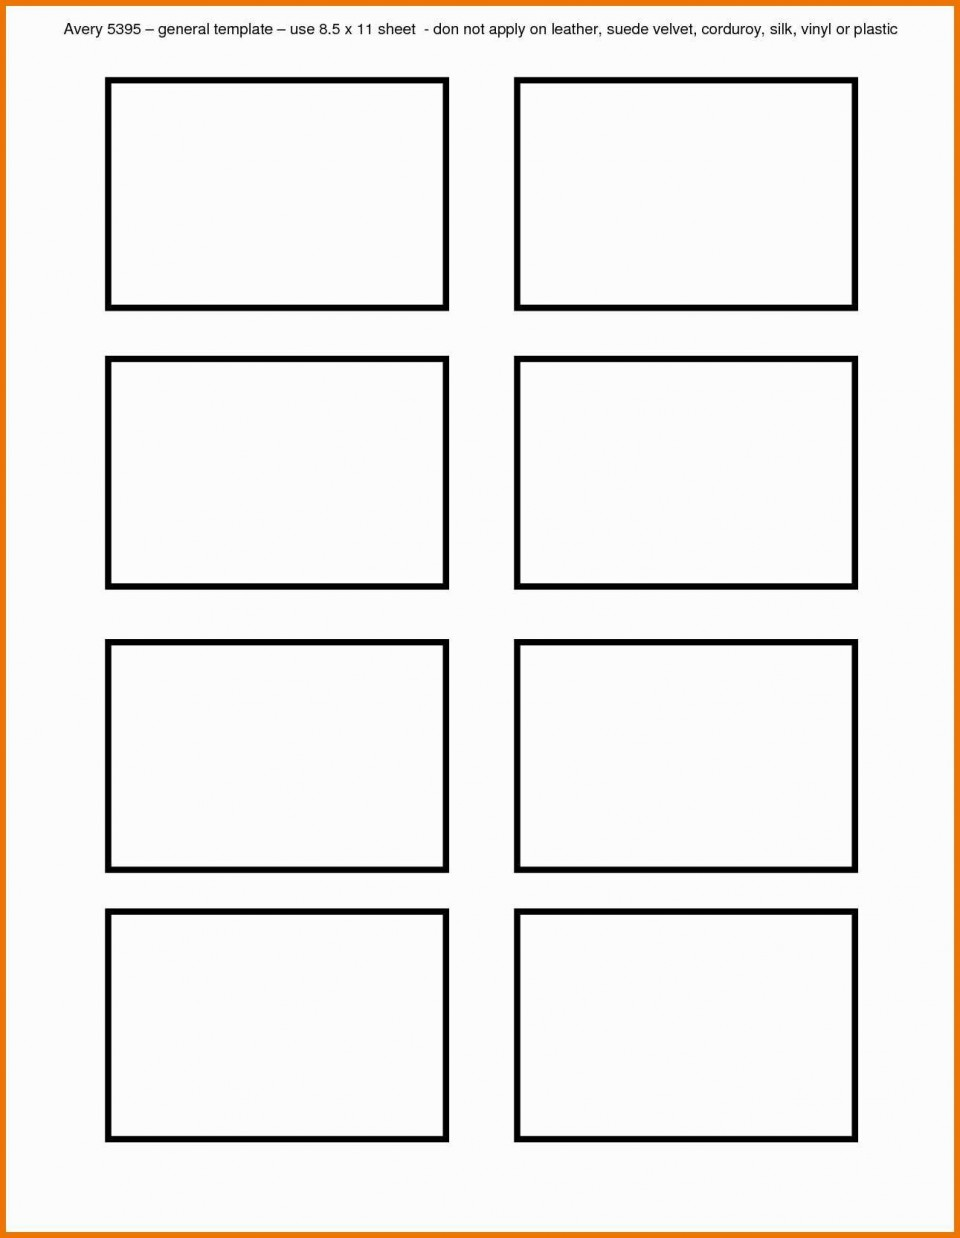 000 Unique Free Printable Card Template Word Concept  Busines Thank You Blank For960